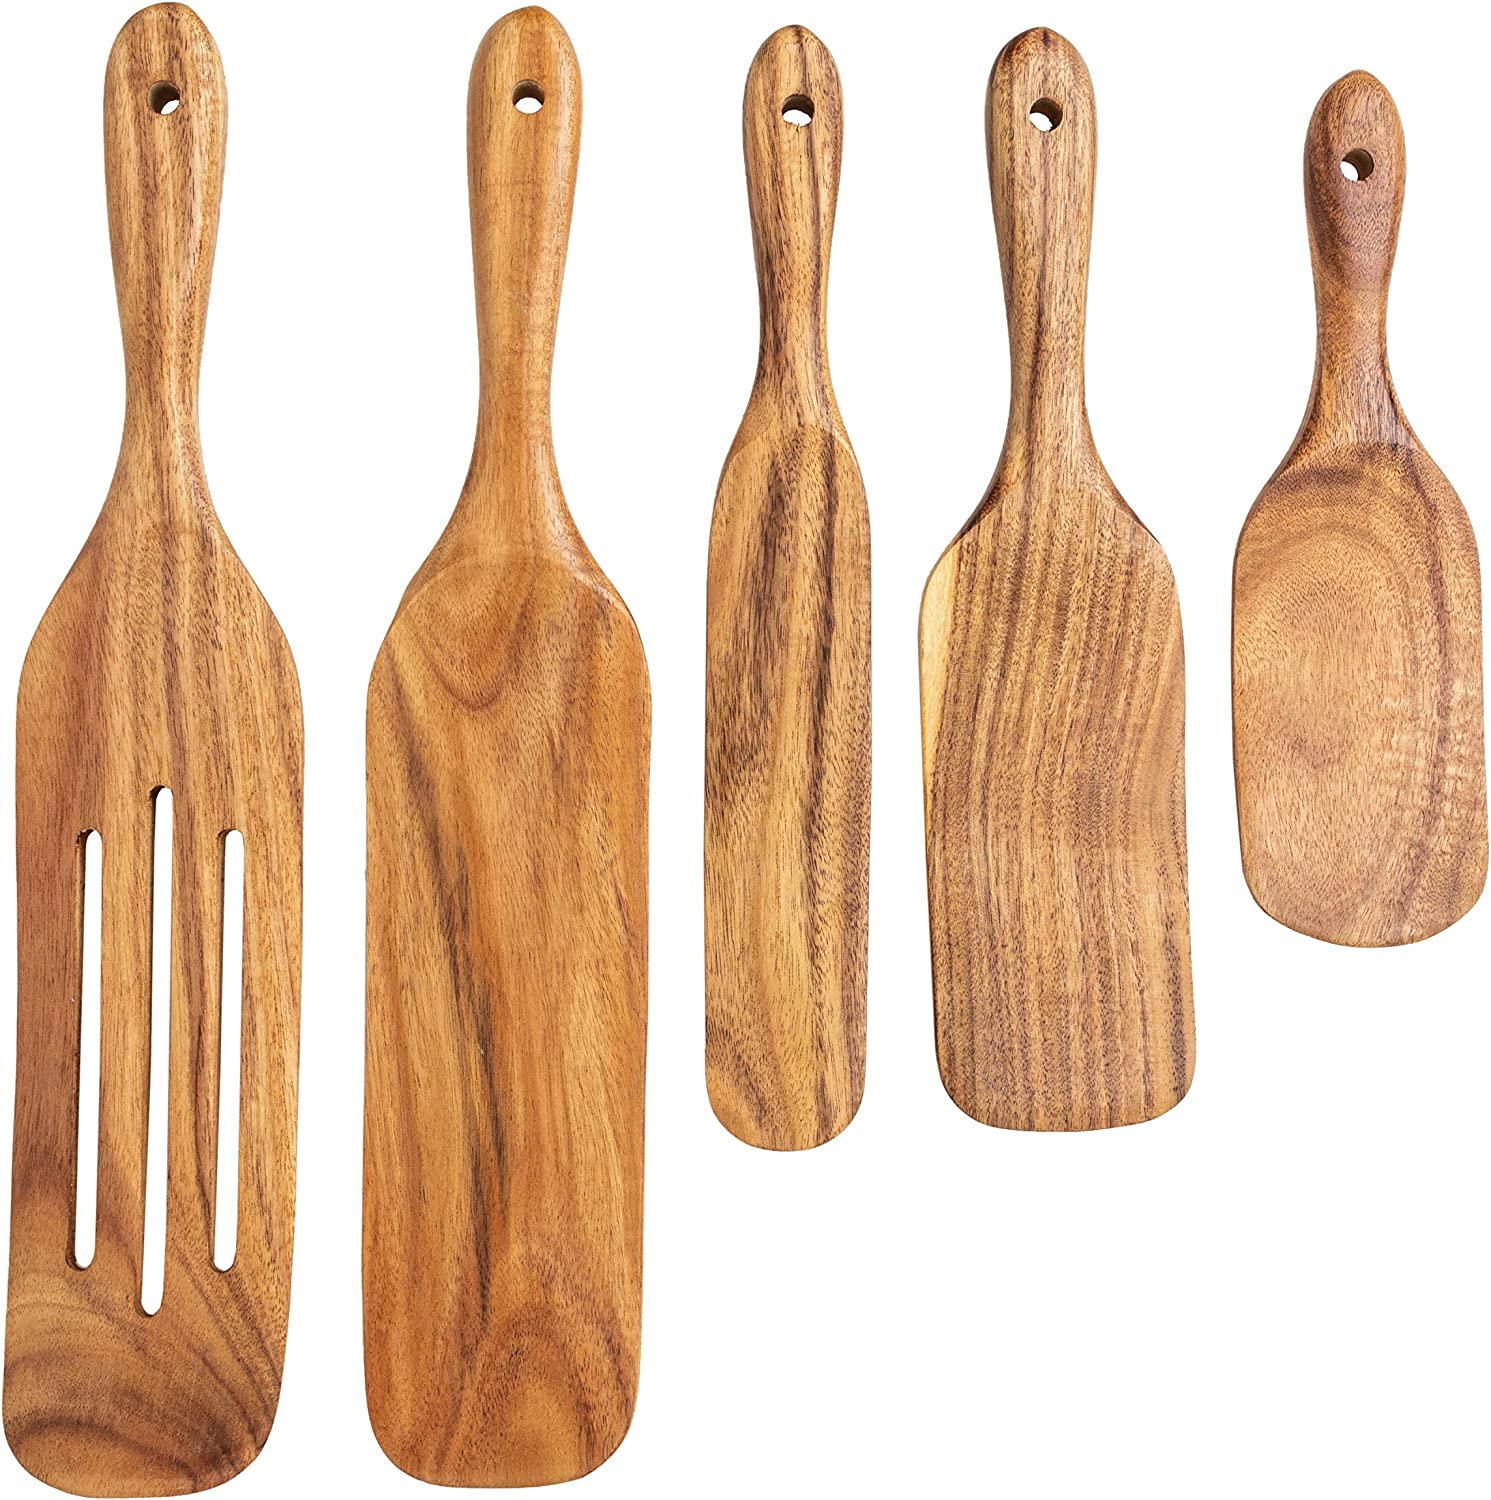 DAN and CHER's Wooden Spurtles - set of 5 pcs quality handmade wood utensils set for cooking light yet durable, scoop, stir, scrap with these wood spurtles - Easy to Clean spatula/wooden spurtle set